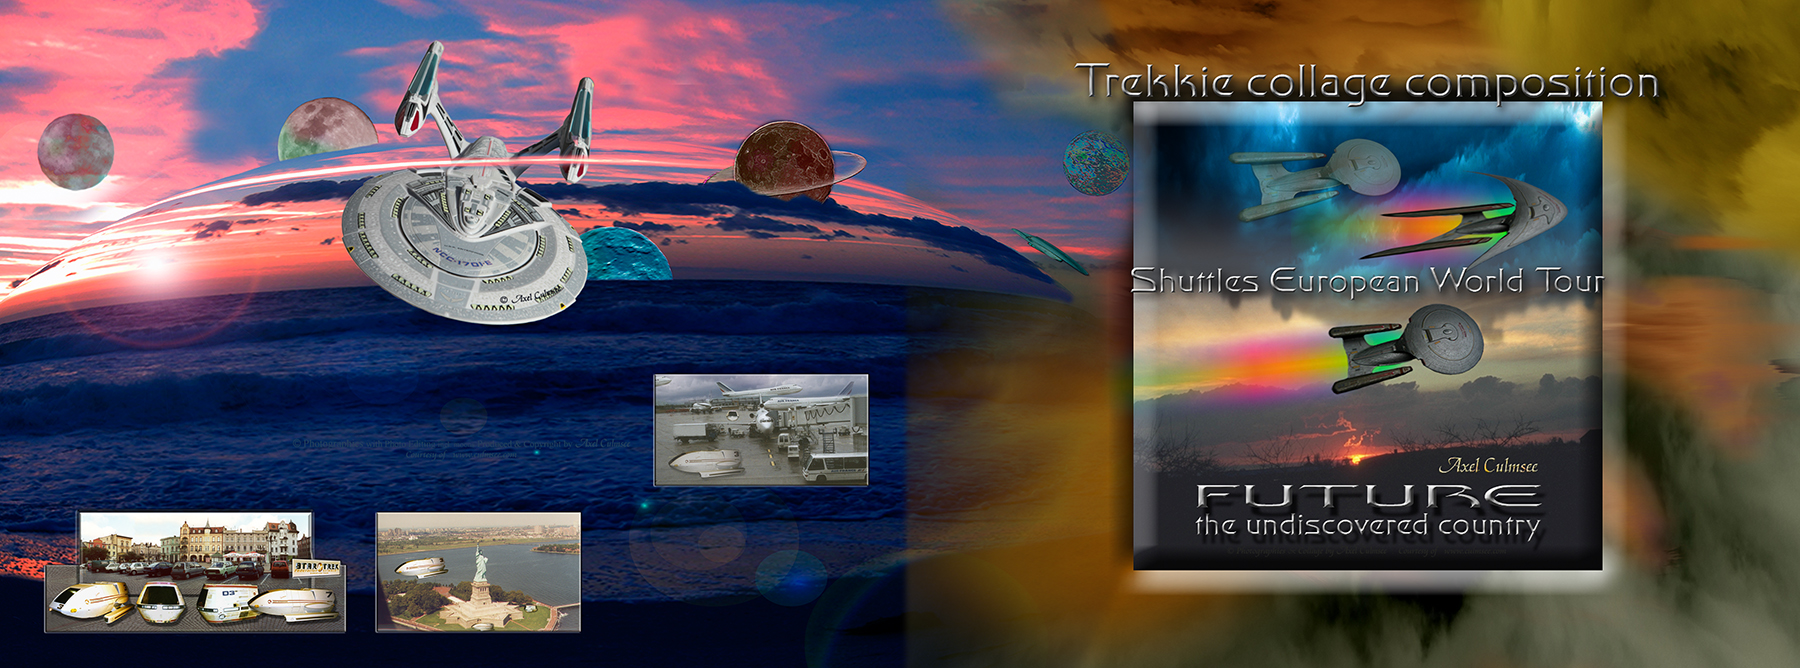 Trekkie collage composition, Cover paperback Amazon kdp Edition